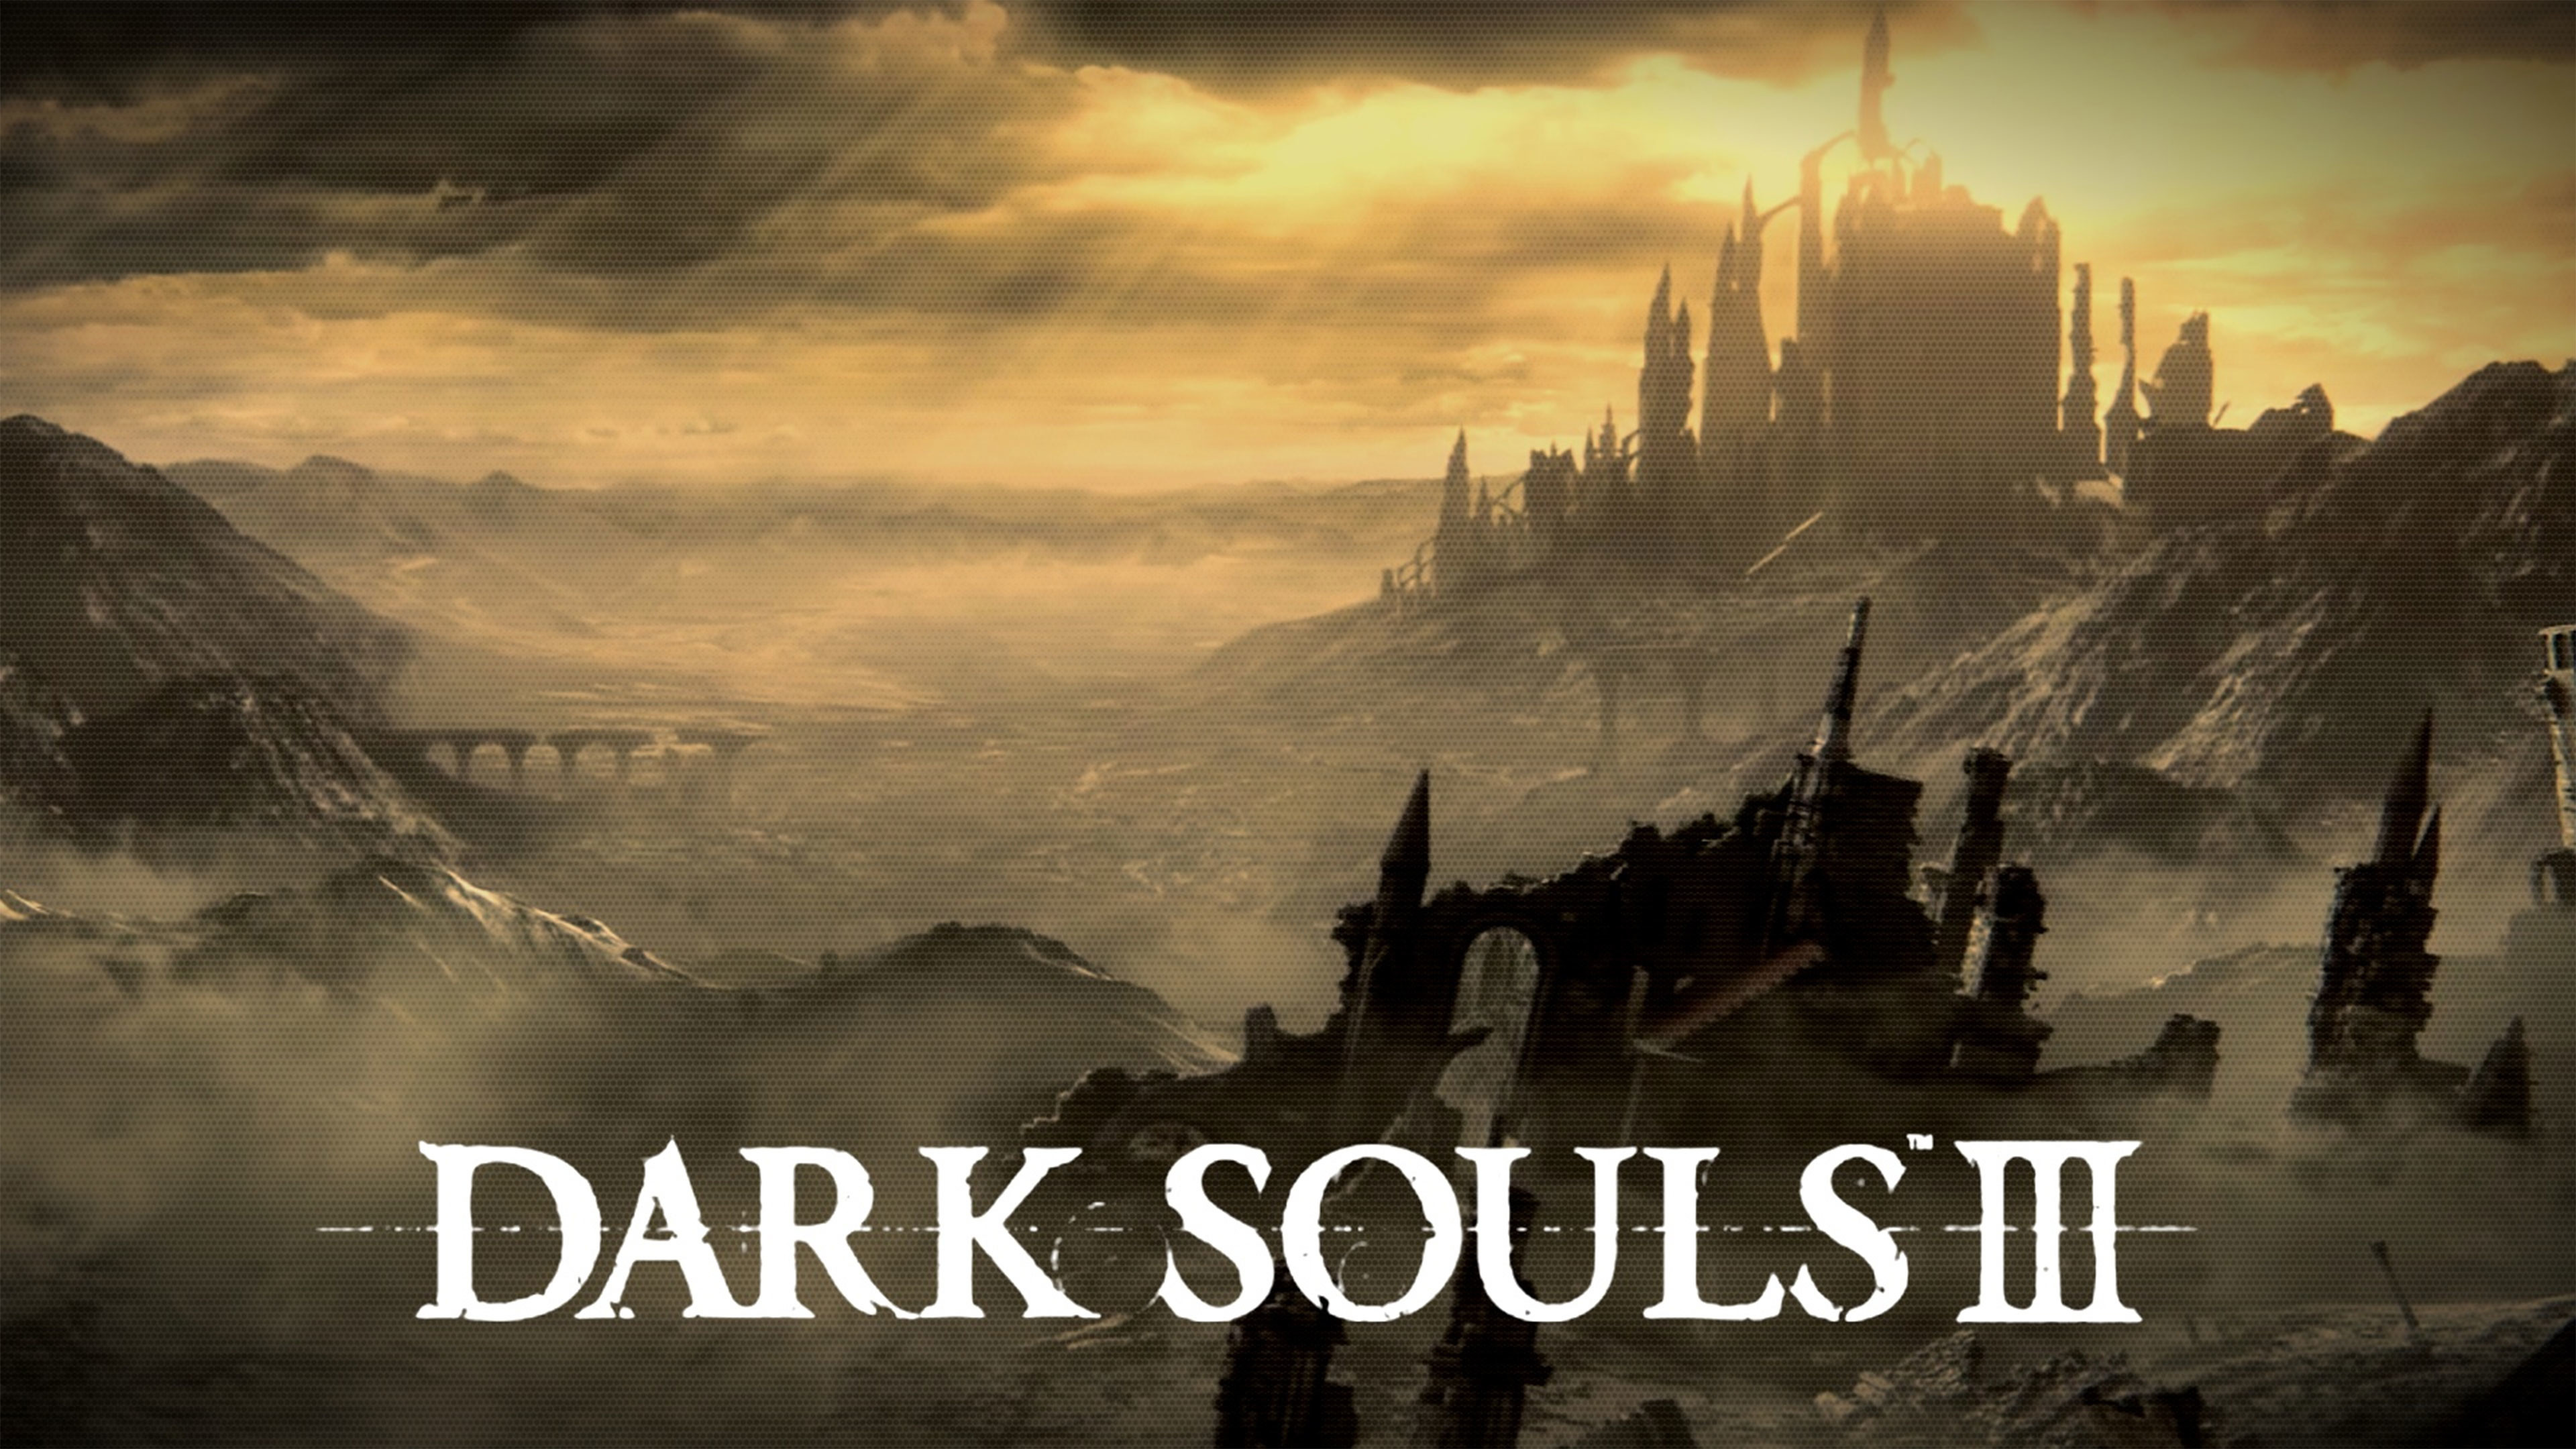 Dark Souls 3 Animated Wallpaper (81+ Images